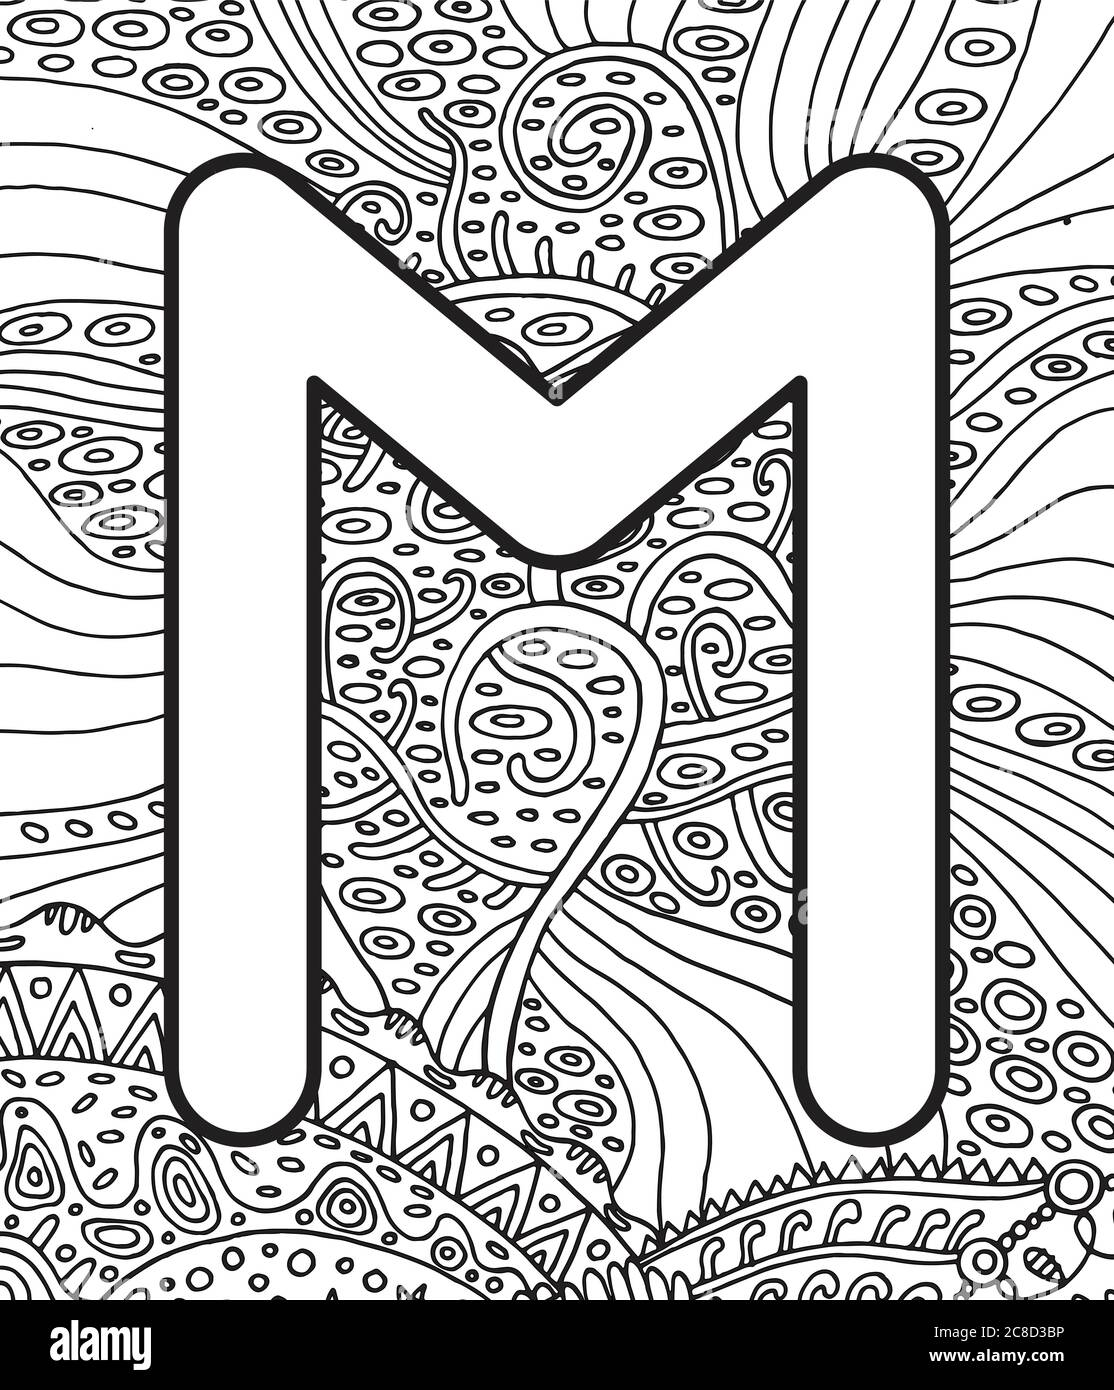 Ancient Scandinavic Rune Ehwaz With Doodle Ornament Background Coloring Page For Adults Psychedelic Fantastic Mystical Artwork Vector Illustration Stock Vector Image Art Alamy